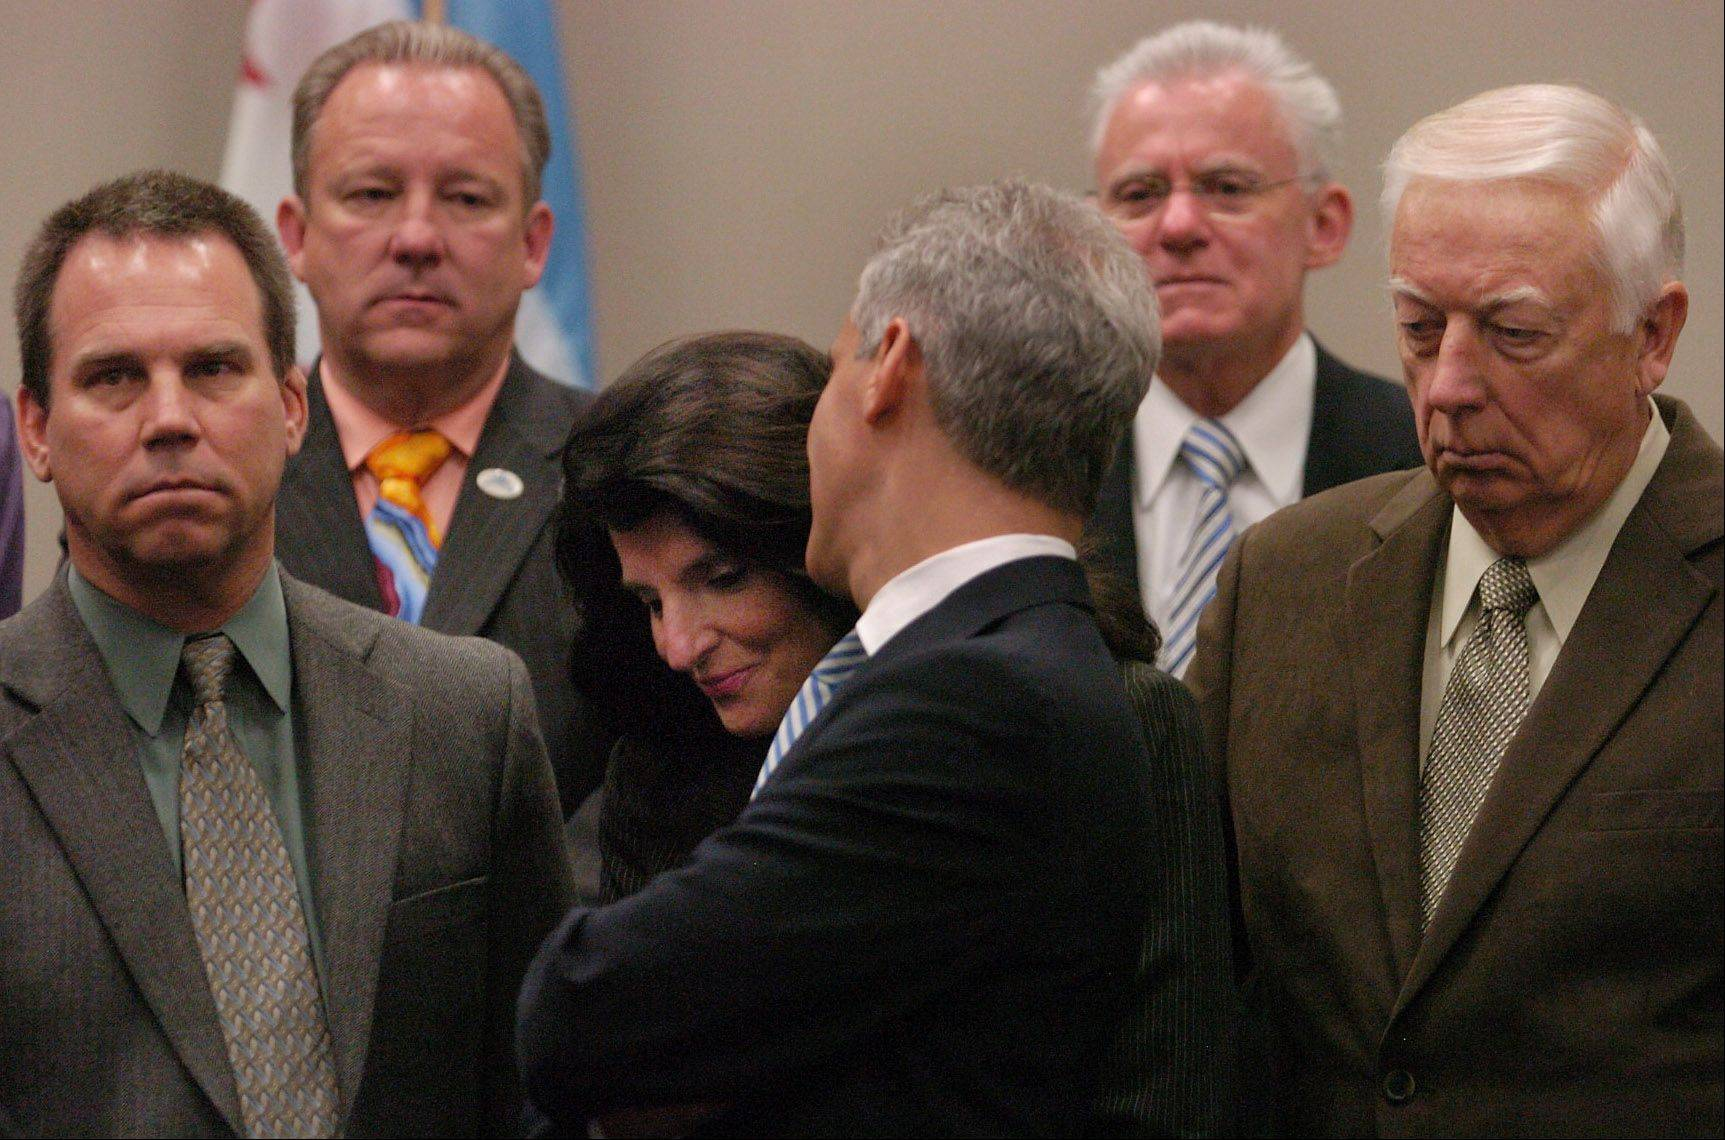 Bob Chwedyk/Daily Herald May 2012Suburban mayors joined forces with Chicago Mayor Rahm Emanuel in May to advocate for pension changes for municipal employees. Among them are Itasca Mayor Jeff Pruyn on the left, Barrington Mayor Karen Darch, center, and Addison Mayor Larry Hartwig on the right.